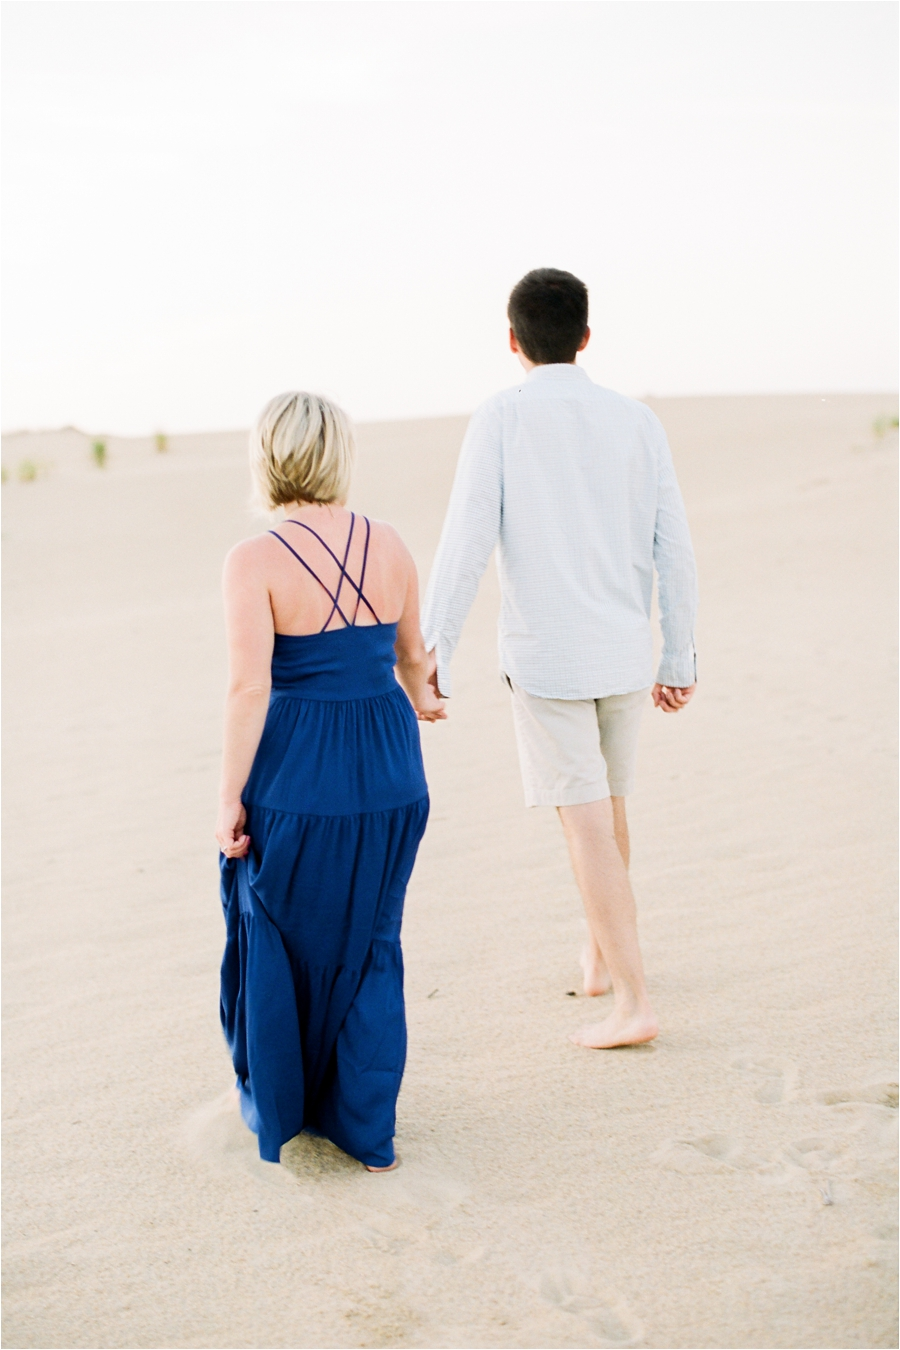 outer-banks-anniversary-session-at-the-sand-dunes-by-charlottesville-wedding-photographer-amy-nicole-photography_0126